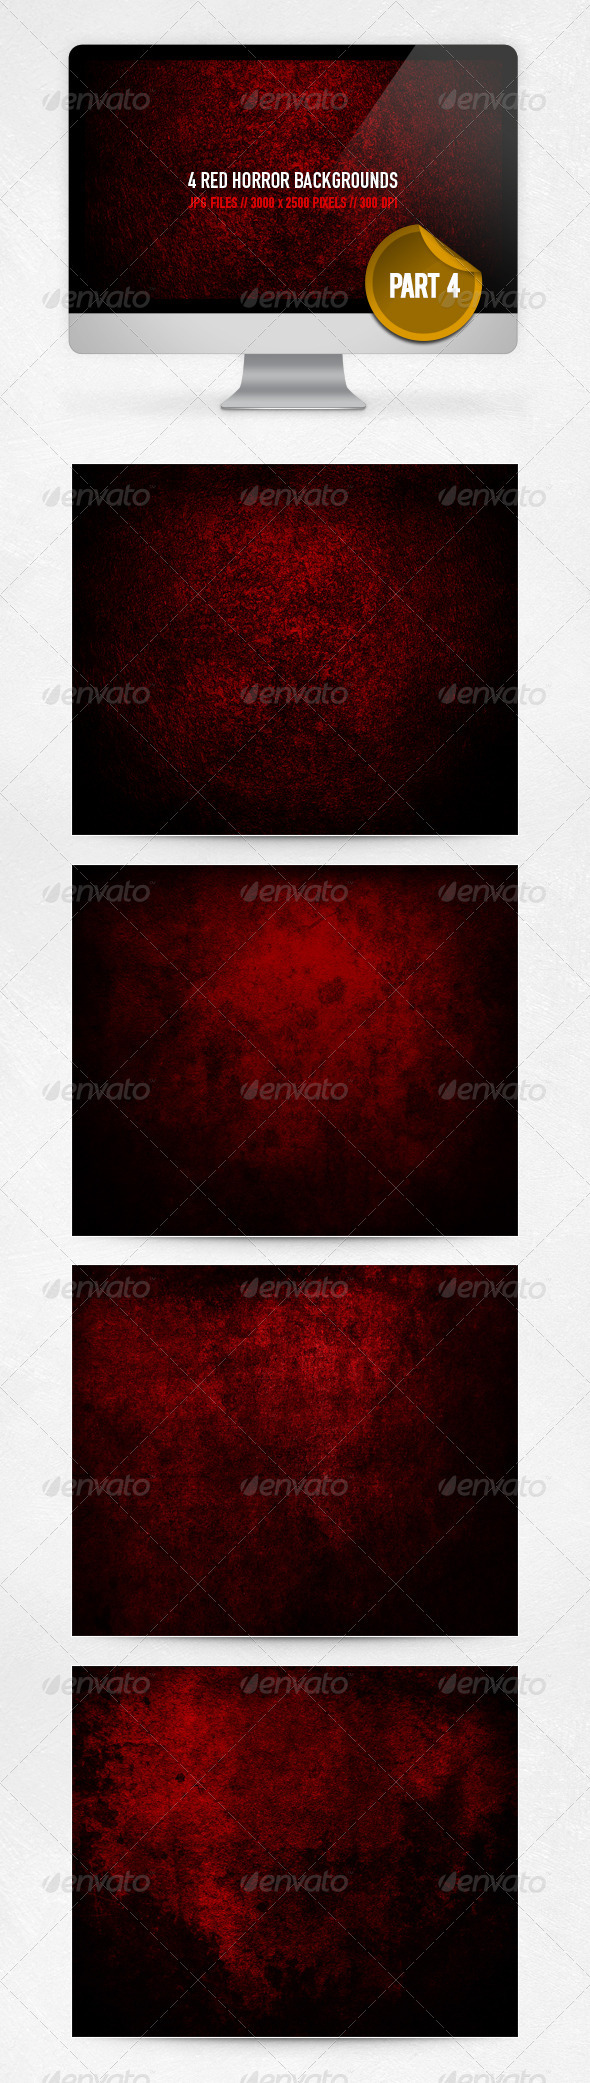 GraphicRiver Red Horror Backgrounds Part 4 3644469